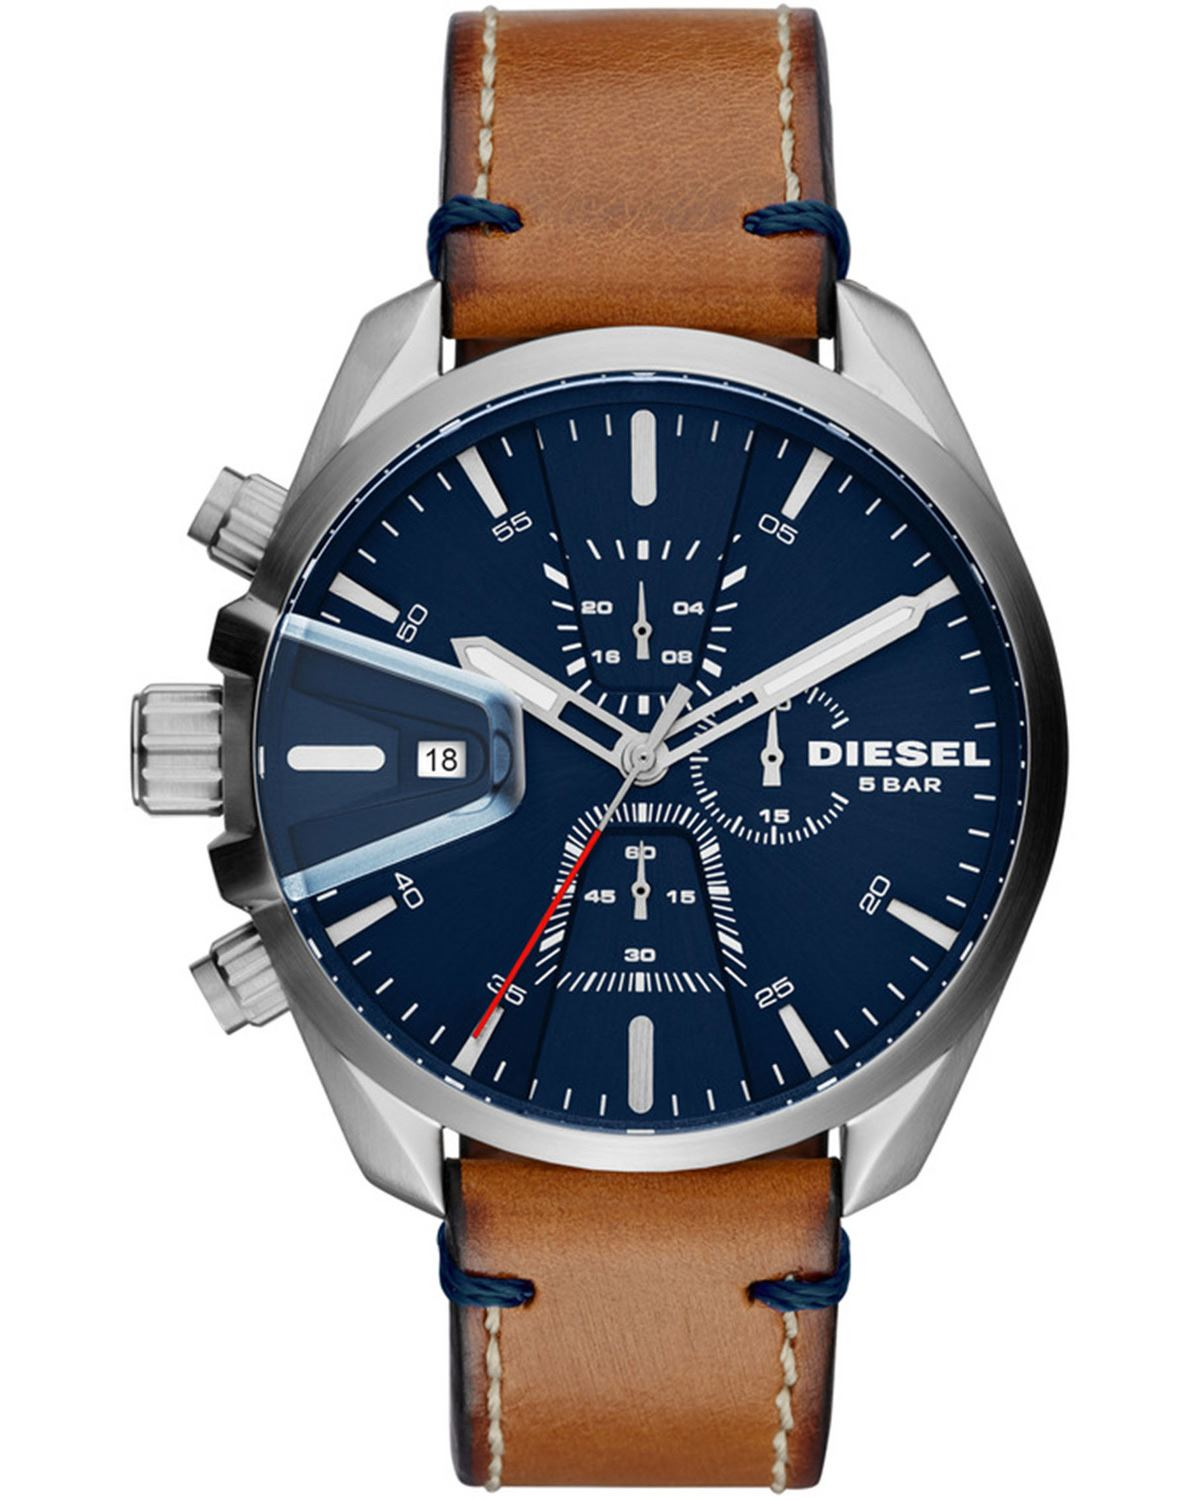 Ρολόι DIESEL MS 9 Chrono Dual Time Brown Leather Strap DZ4470   brands diesel